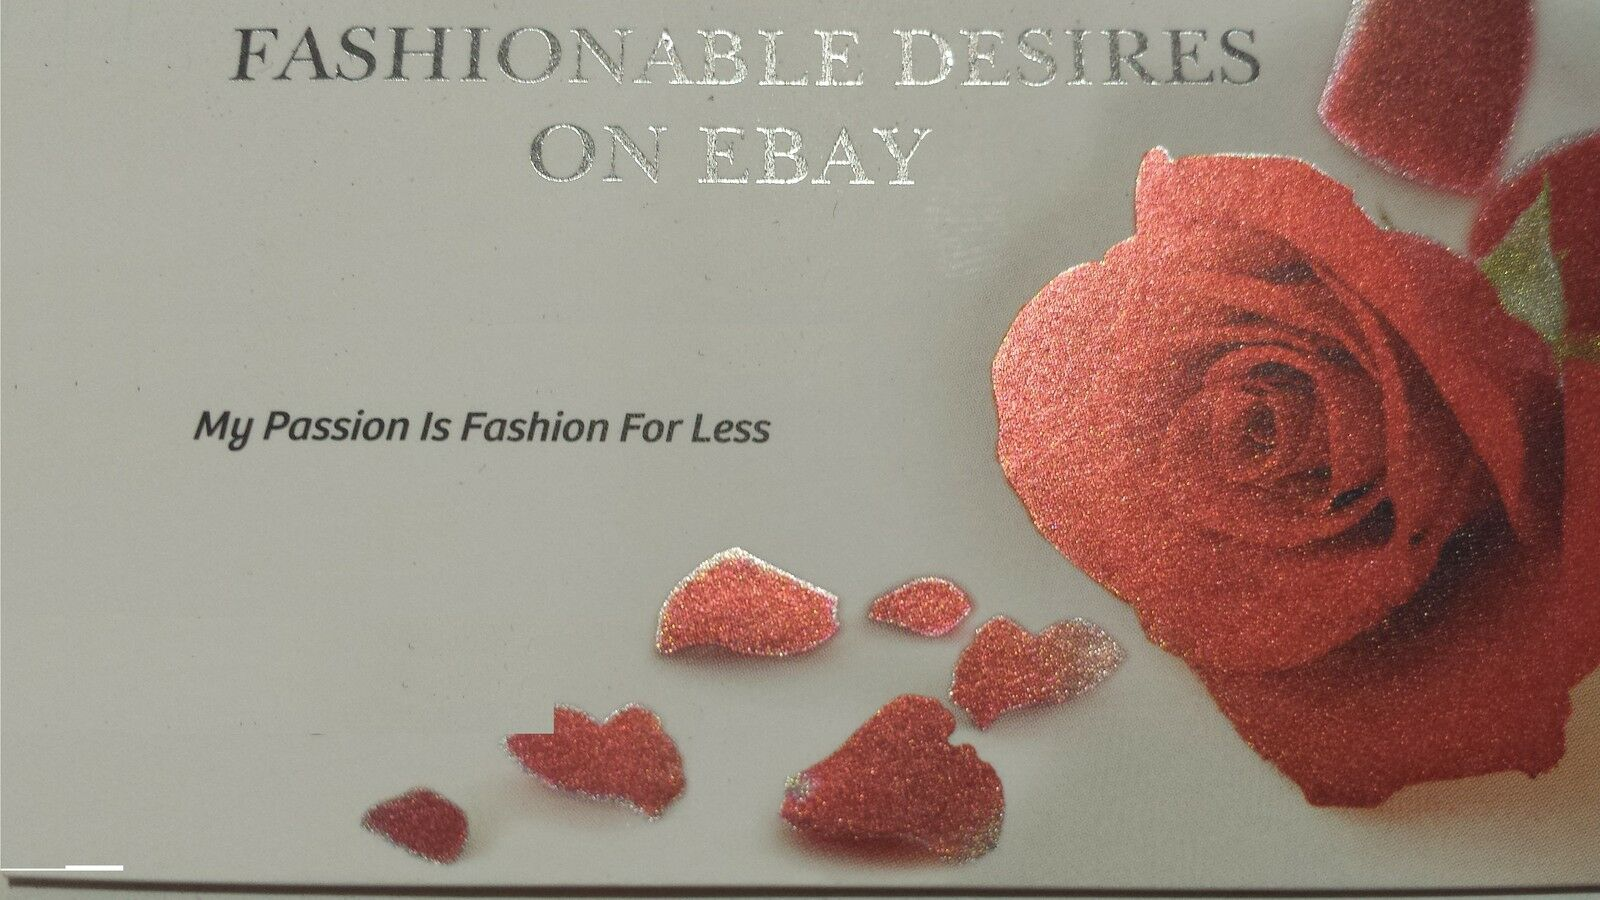 FASHIONABLE DESIRES